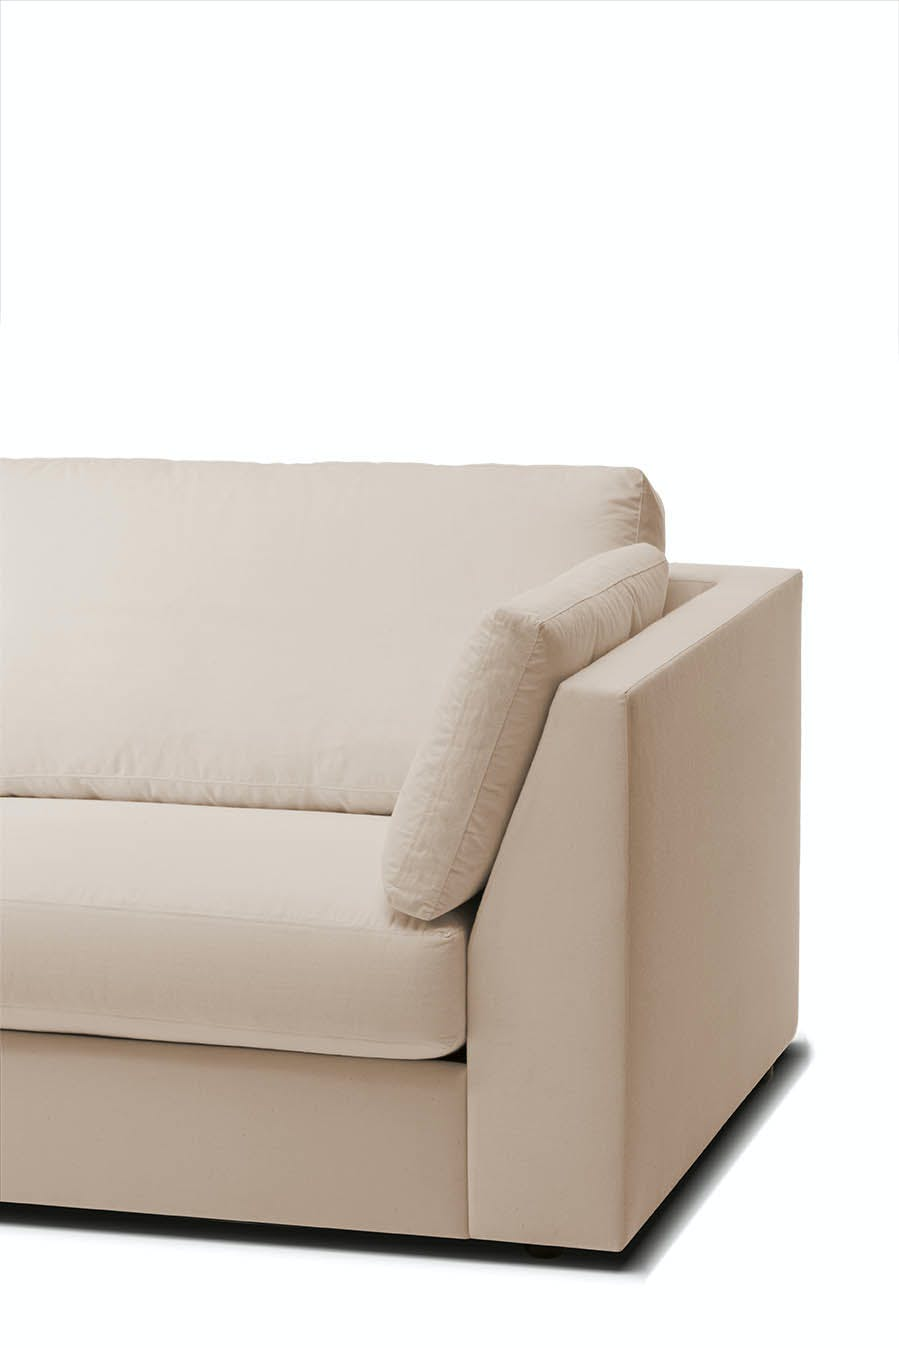 Jab Anstoetz Inspiration Sofa Arm 3 Haute Living